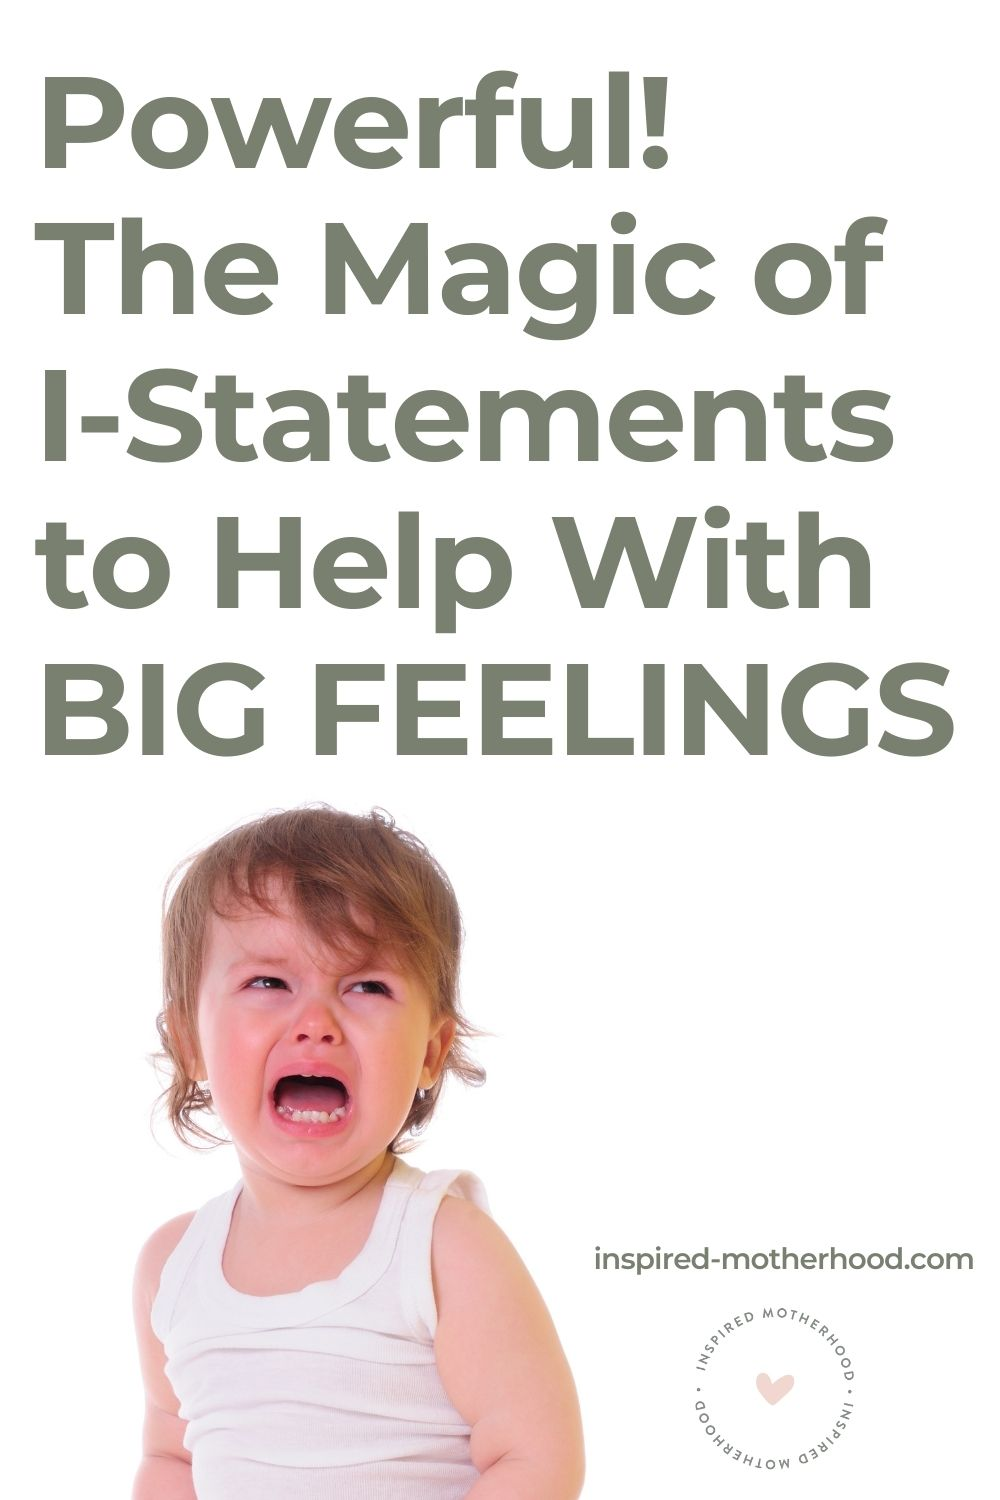 Does your child have BIG emotions that often leads to a tantrum? Here is a specific strategy for how to help kids express big feelings and manage their emotions.